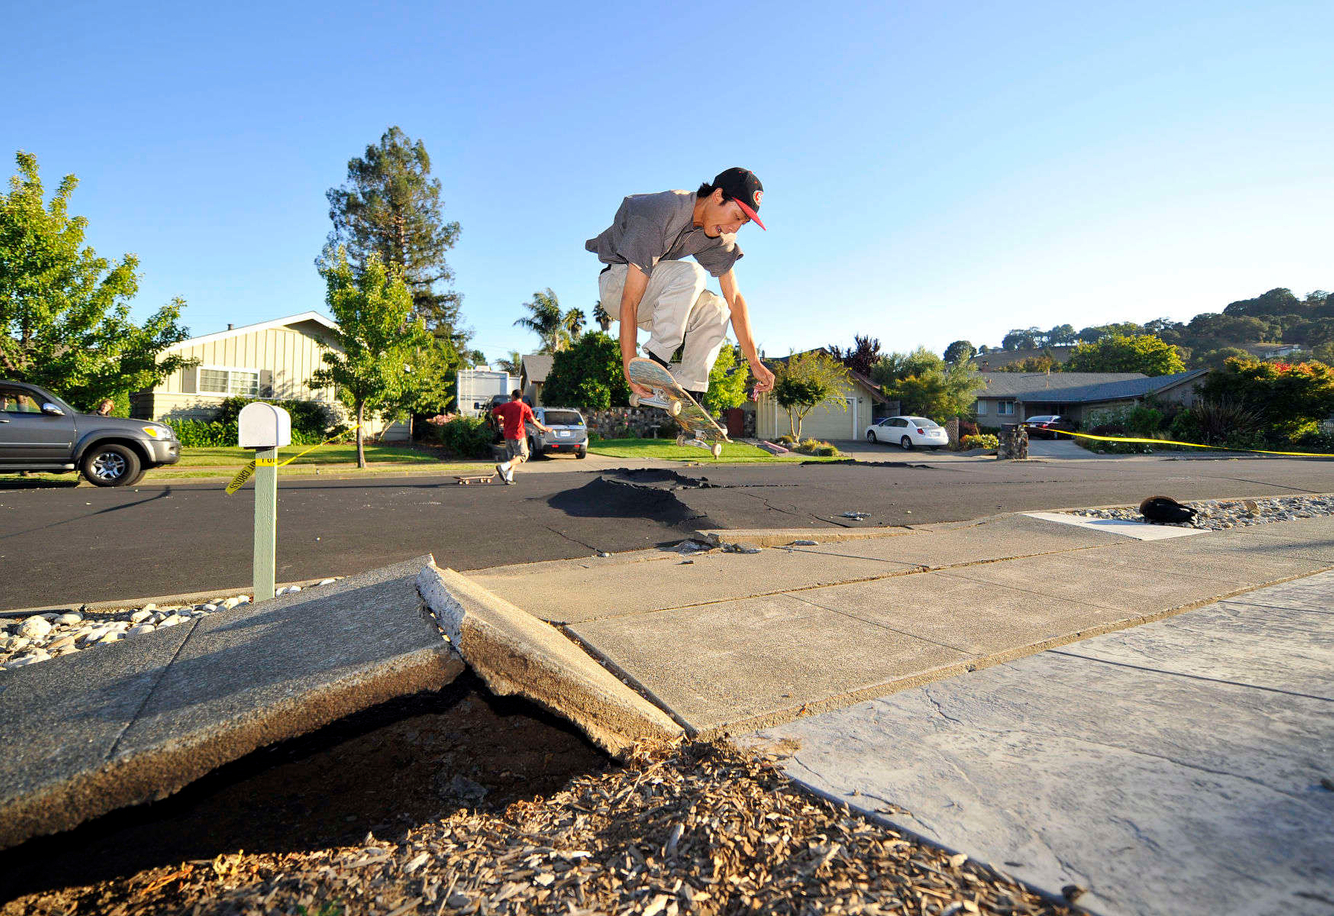 EARTHQUAKE: A skateboarder launches over a buckled sidewalk after a 6.1 Earthquake struck in Napa, California.